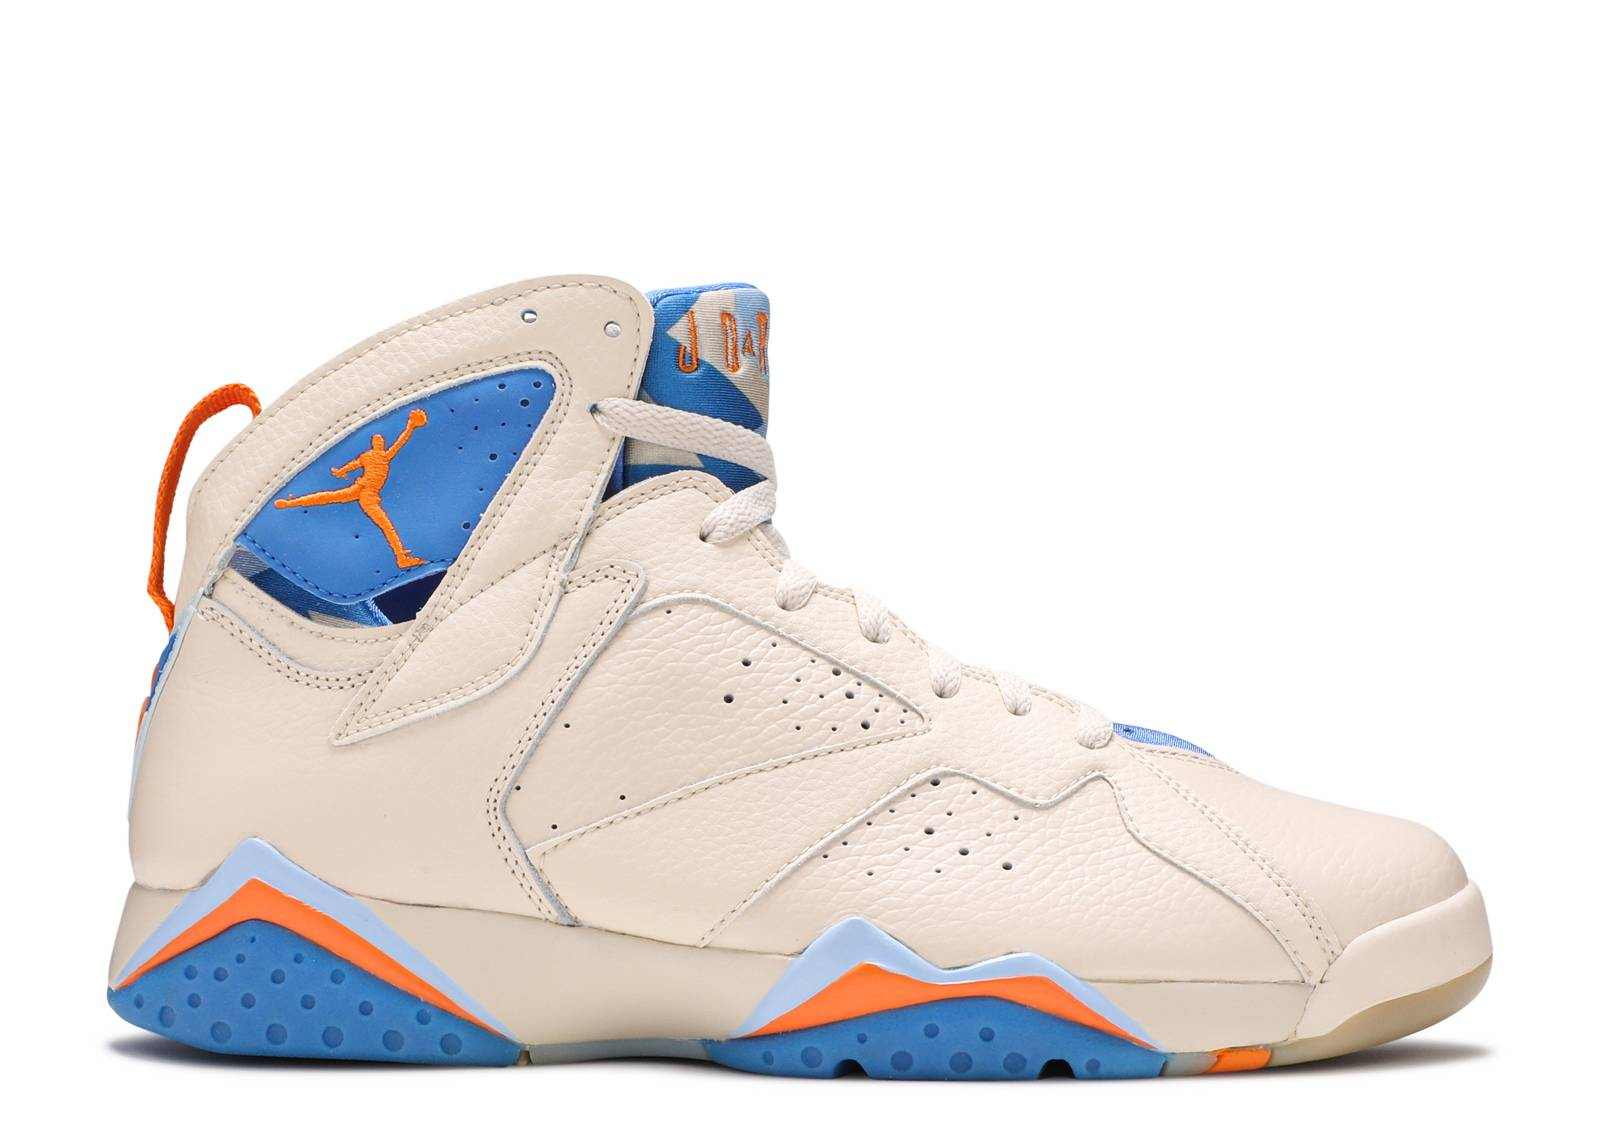 finest selection 6c571 13e4c Air Jordan 7 Retro 'Pacific Blue'